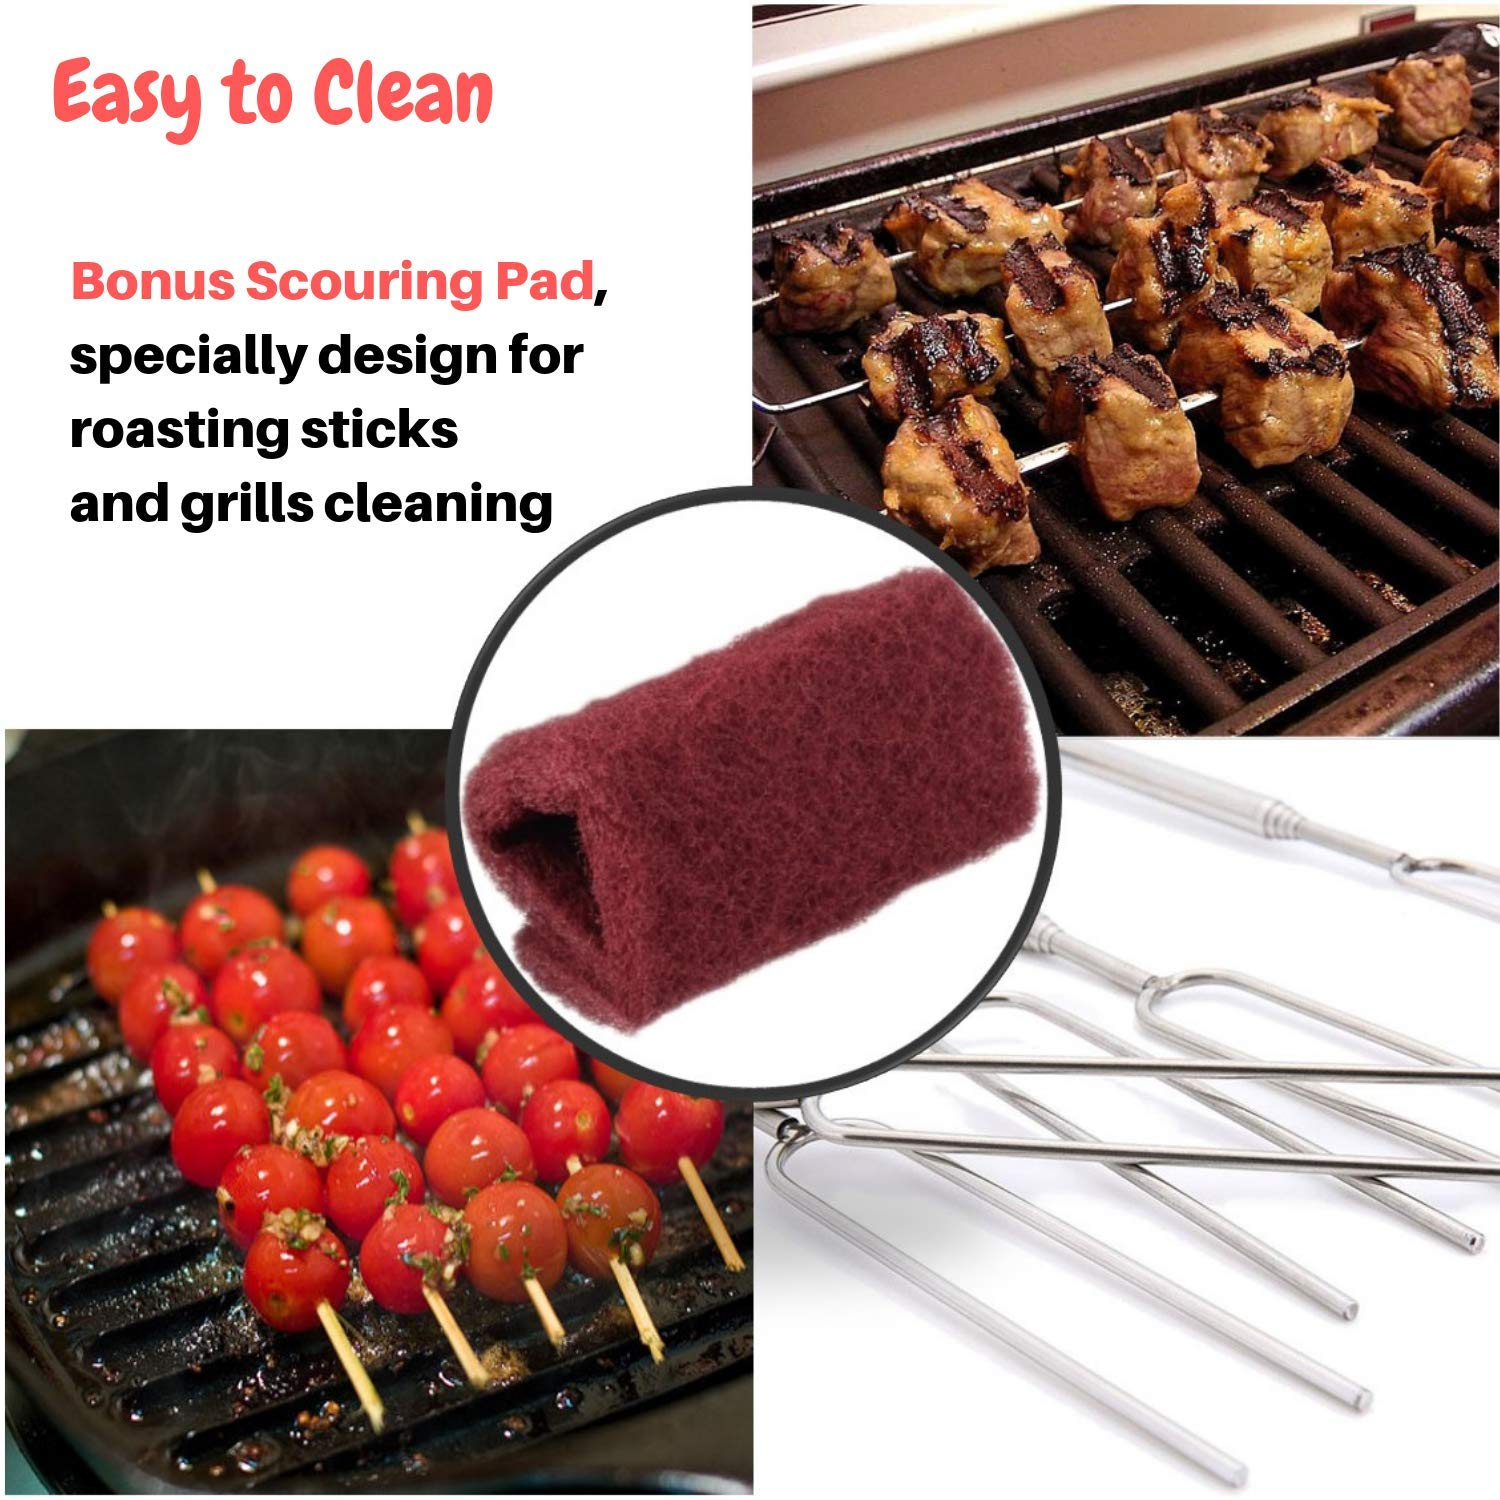 Marshmallow Roasting Sticks Extending Roaster Set of 8 Telescoping Smores Skewers & Hot Dog Forks 32 Inch Fire Pit Camping Cookware Campfire Cooking Kids with FREE Bag